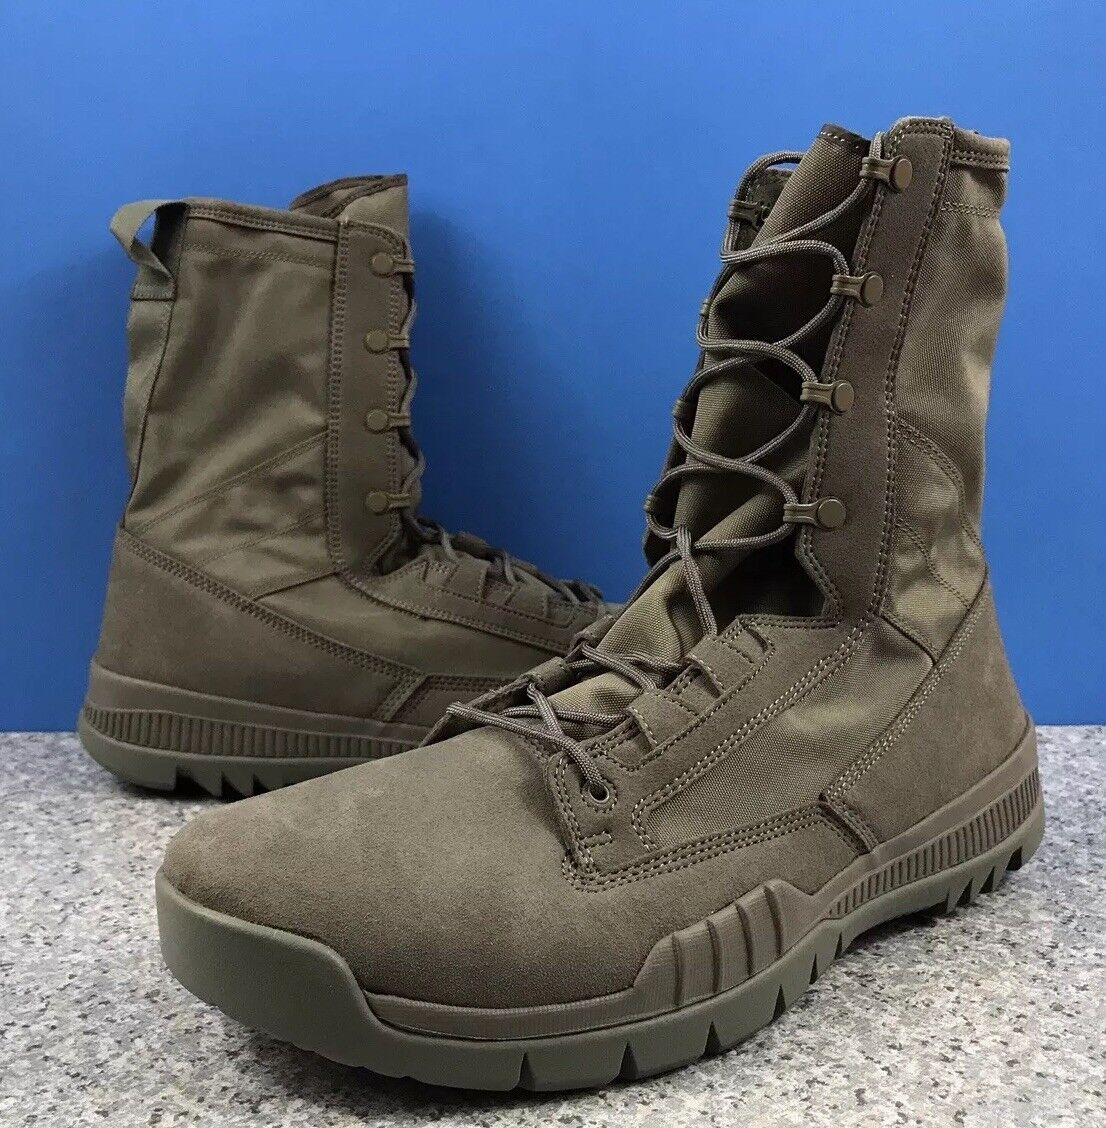 Nike Sfb Field 8  Sz 15 631371-222 Tactical Military Military Military Police Boots Sage 093105